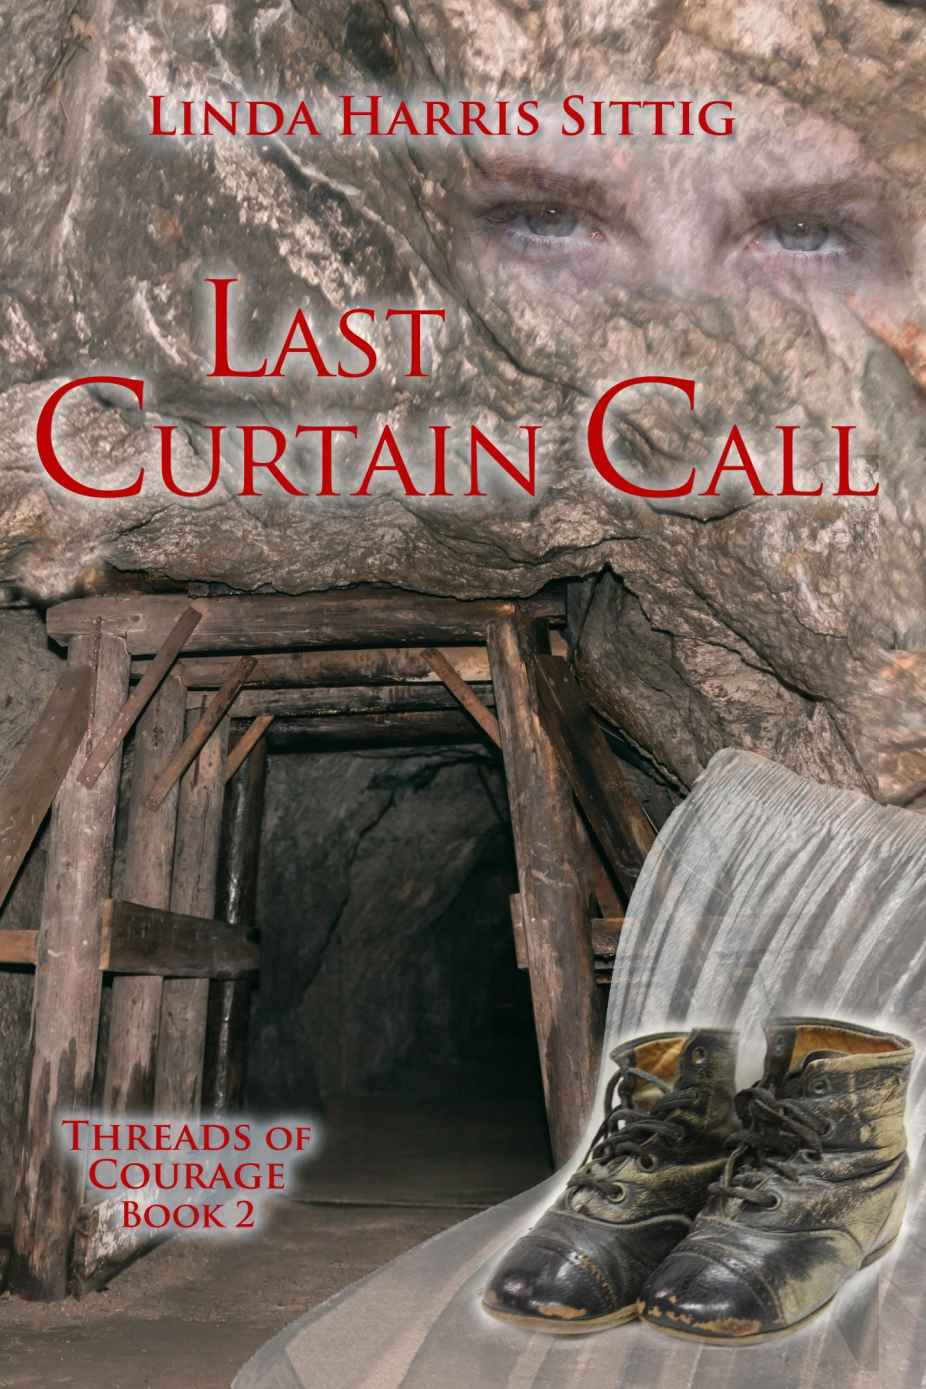 Book Release: Last Curtain Call